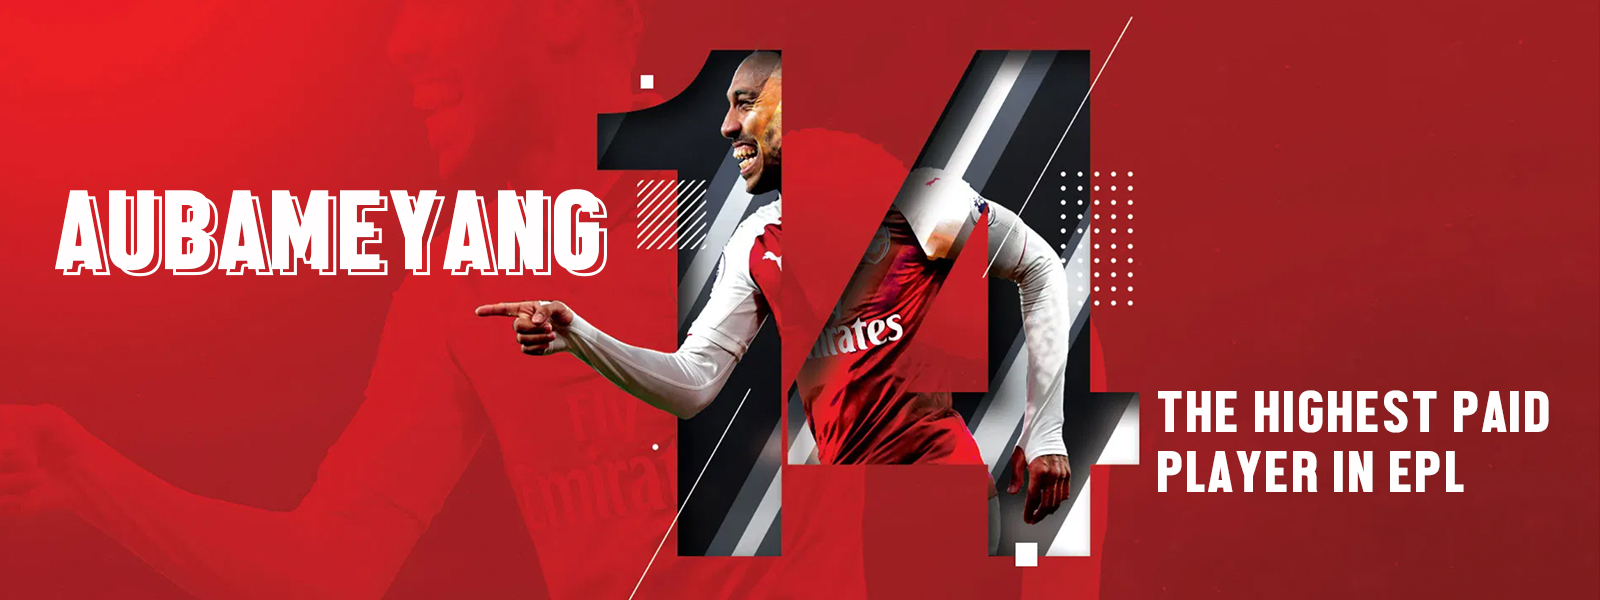 Pierre-Emerick Aubameyang - The Highest Paid Player In EPL